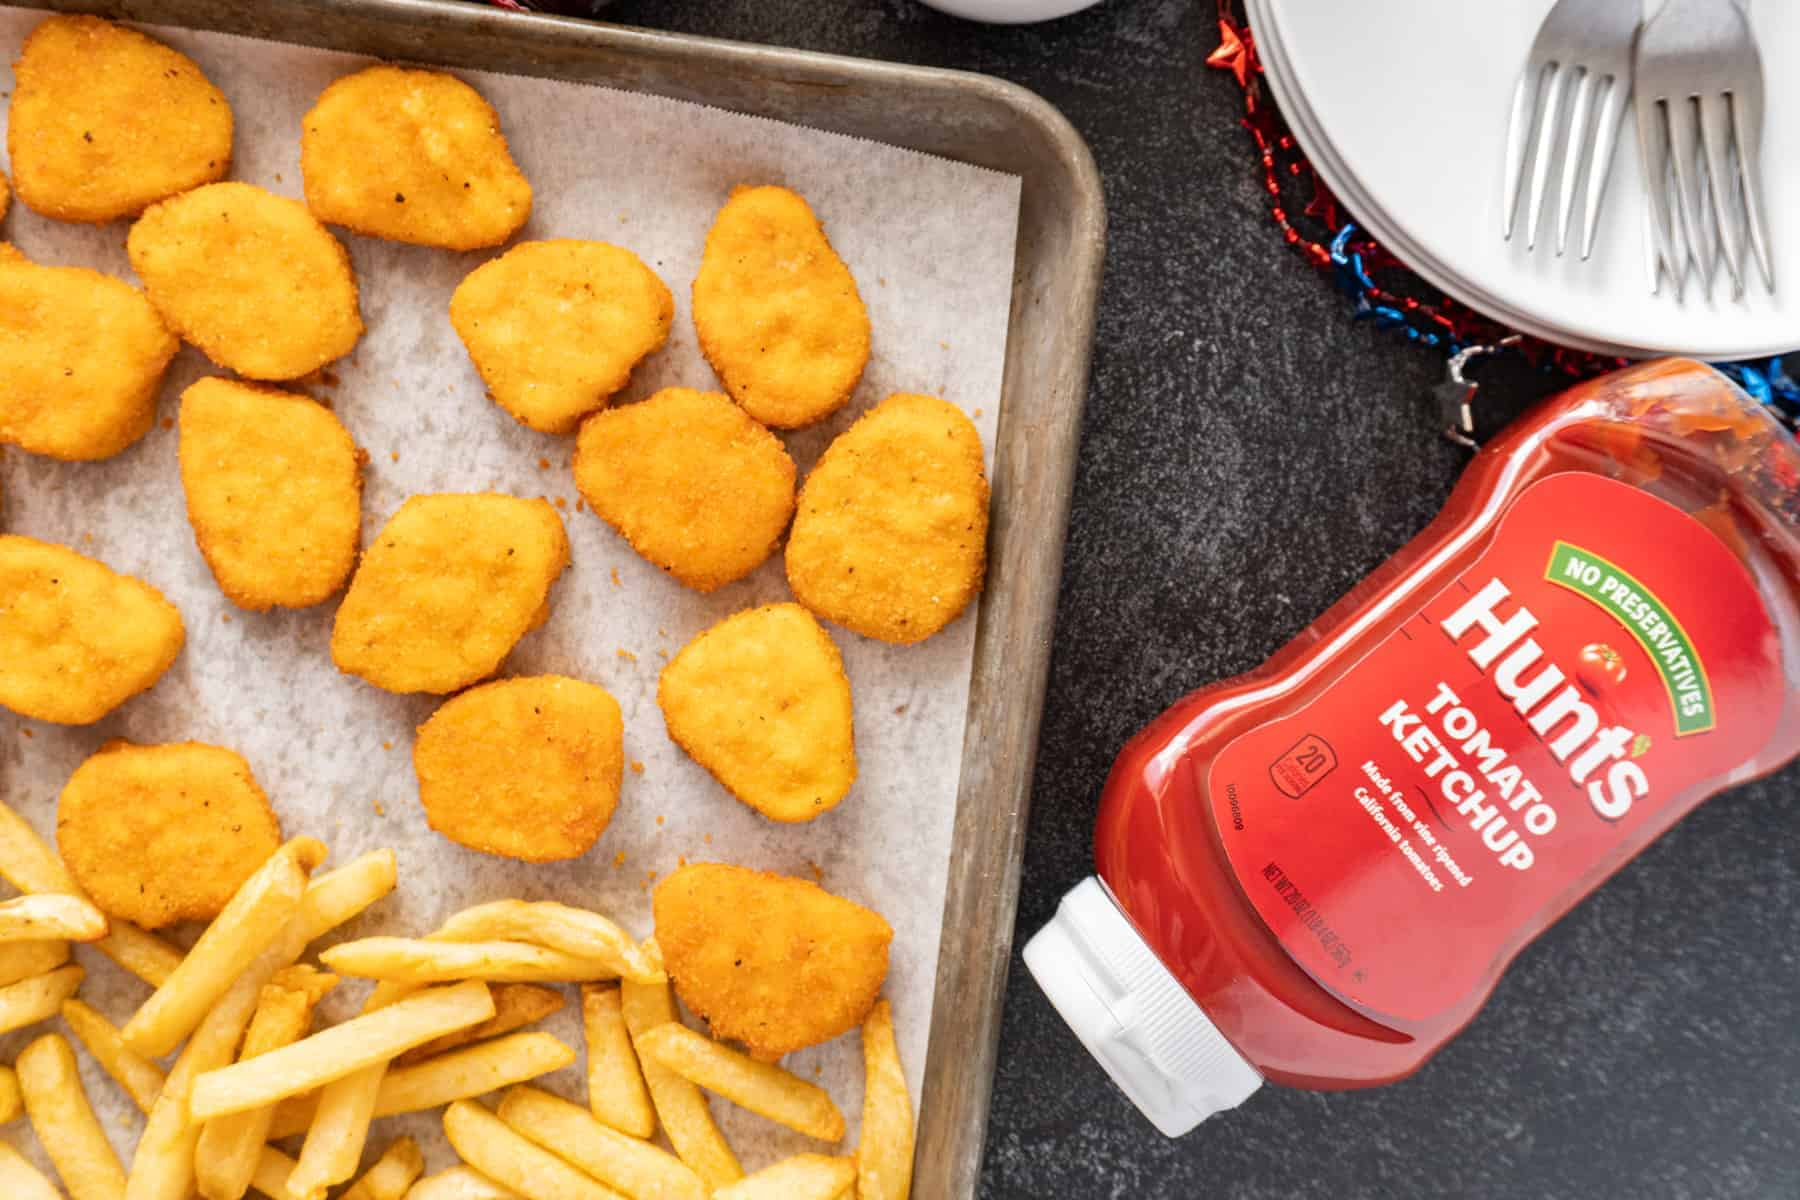 chicken nuggets and fries on baking sheet with bottle of ketchup next to it